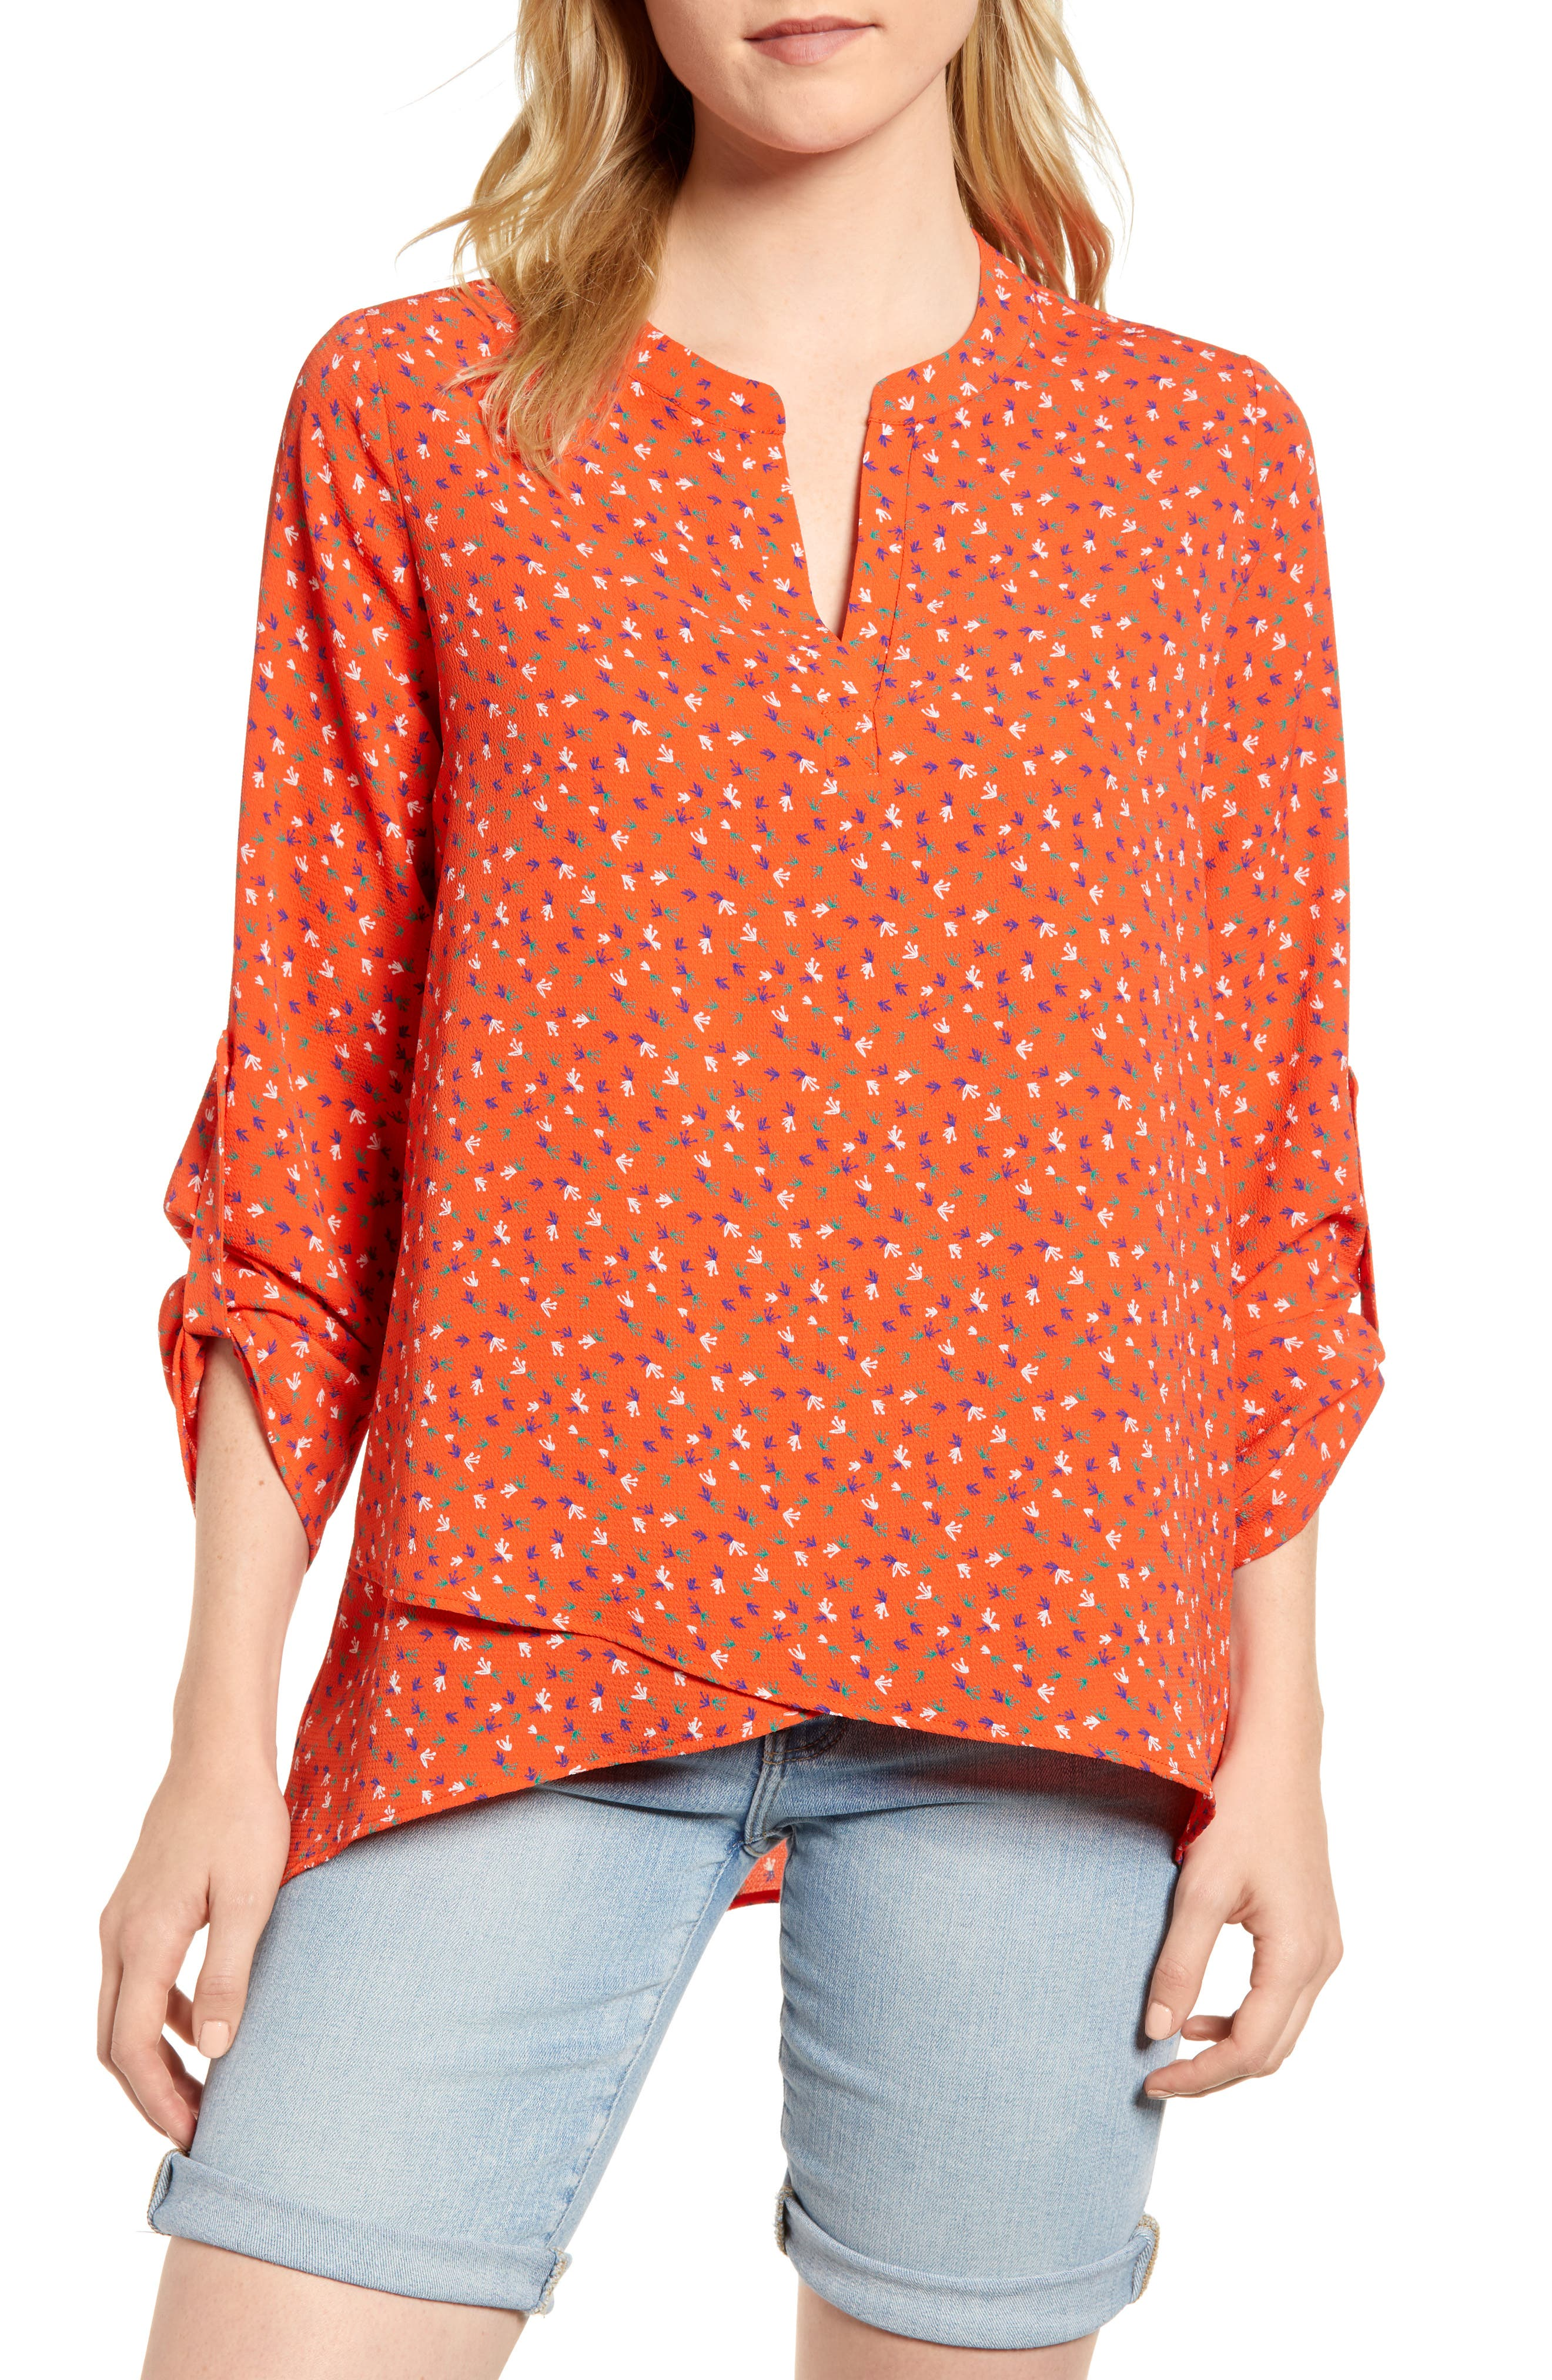 x Living in Yellow Erin Crossover Tunic,                         Main,                         color, Red Floral Print